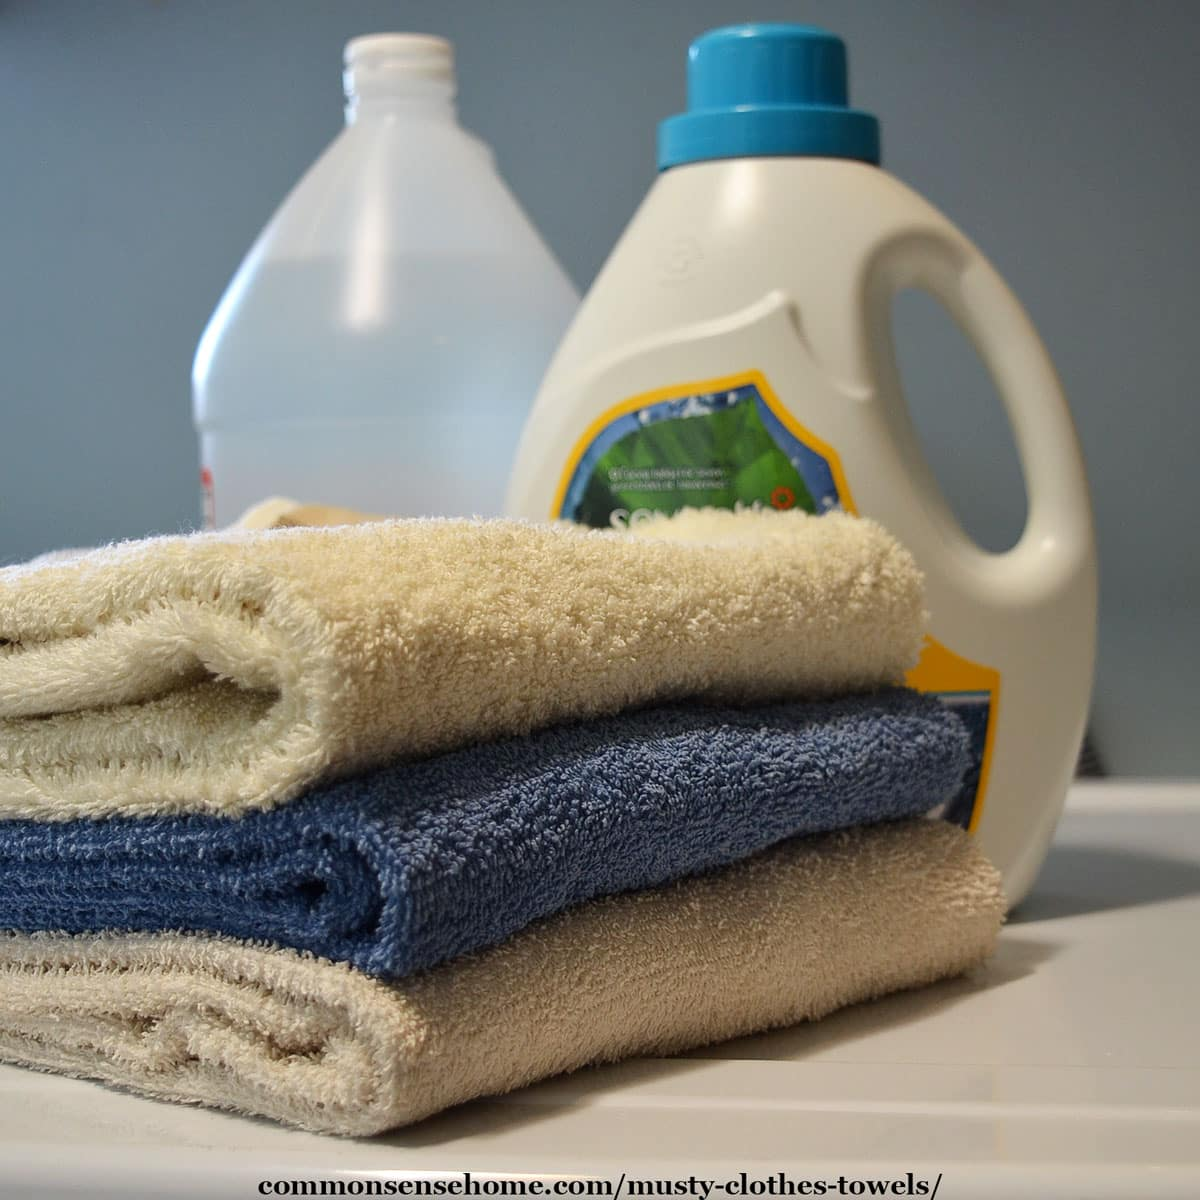 clean towels and laundry products